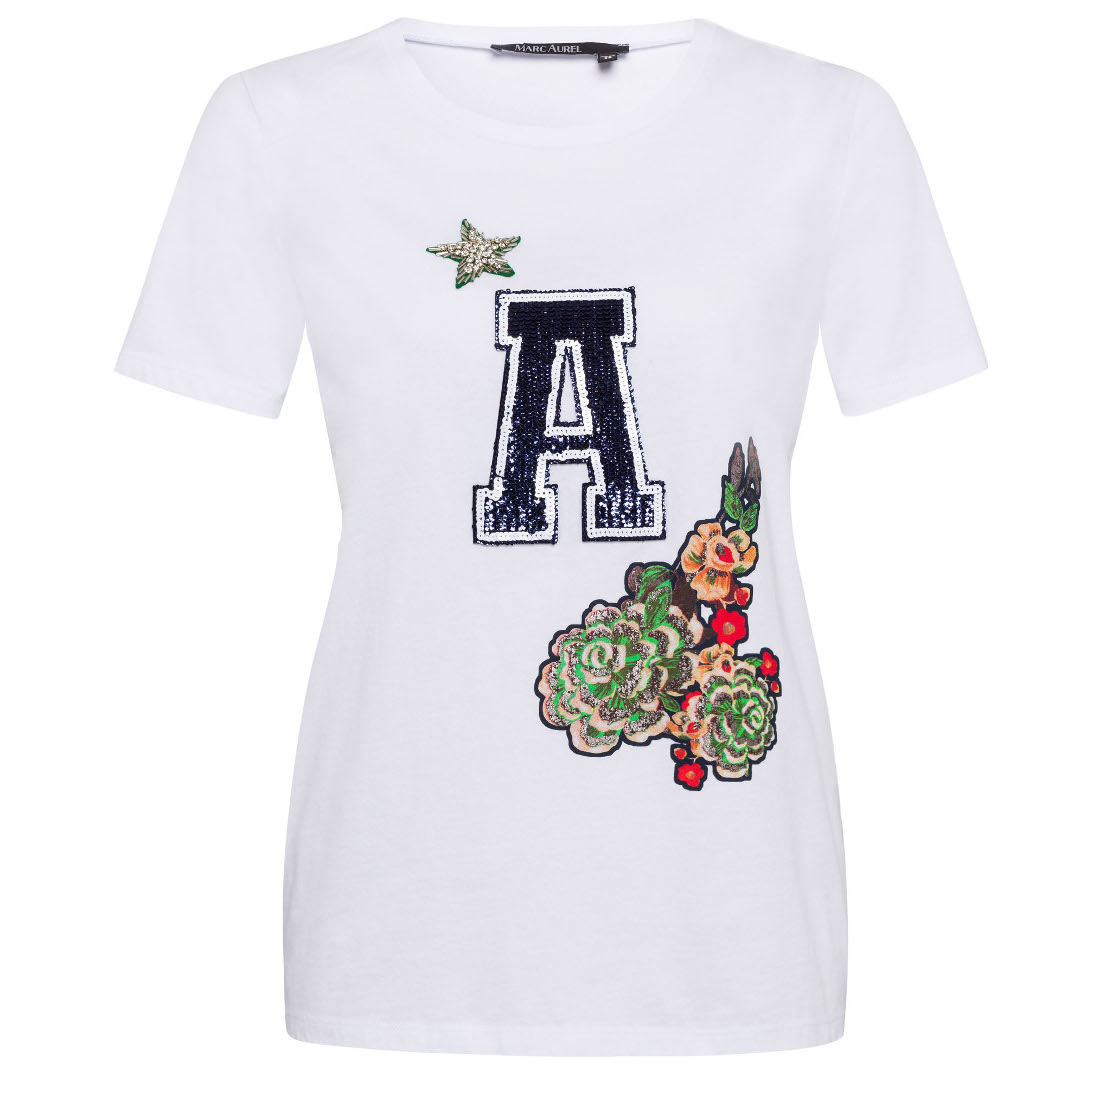 Marc Aurel t-shirt 76647000-72836 in het Wit Groen